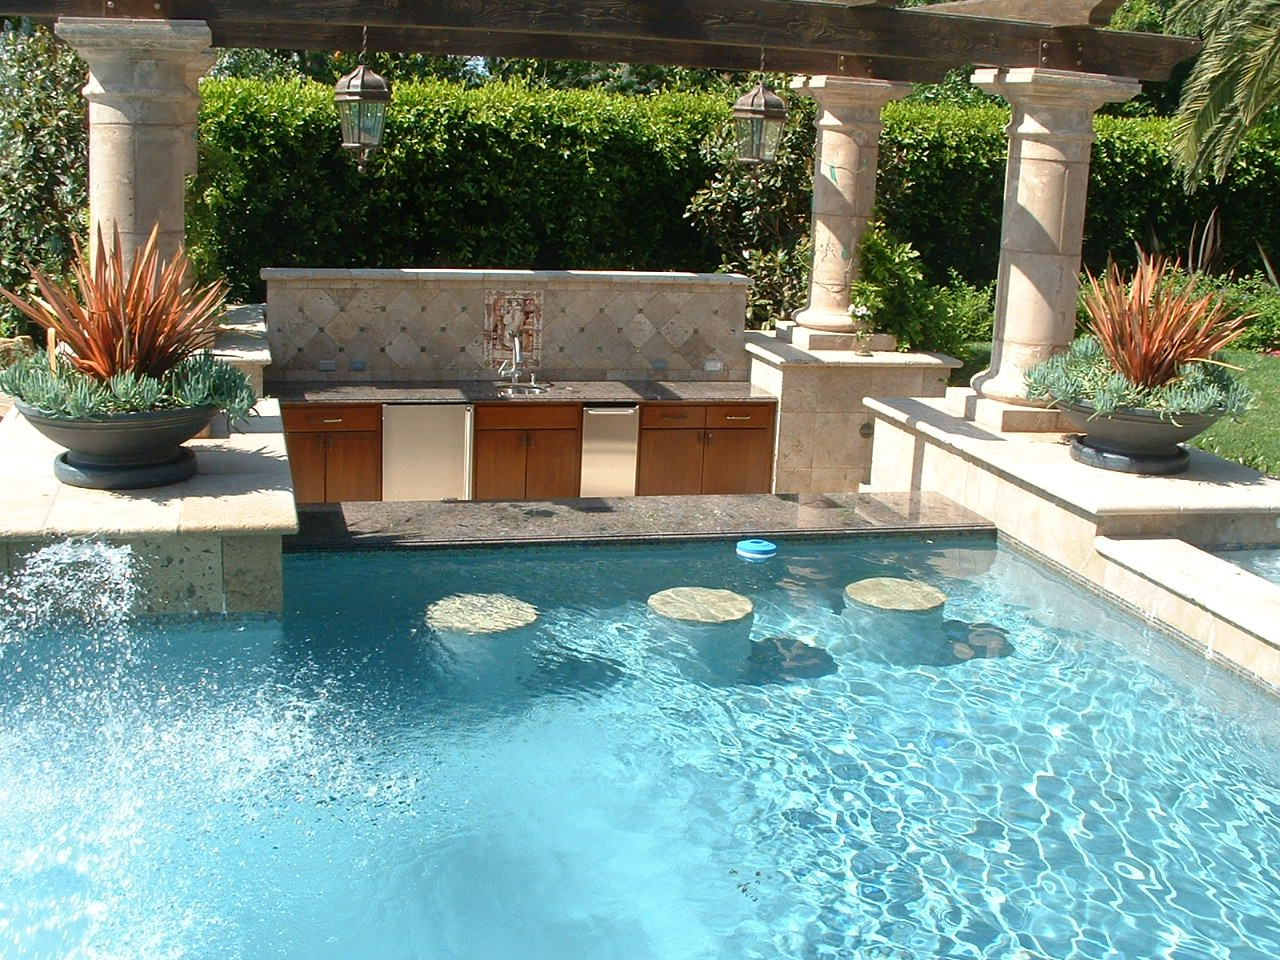 Pools and Spas in Carlsbad, CA - San Diego Dream Pools and ... on Dream Backyard With Pool id=43634